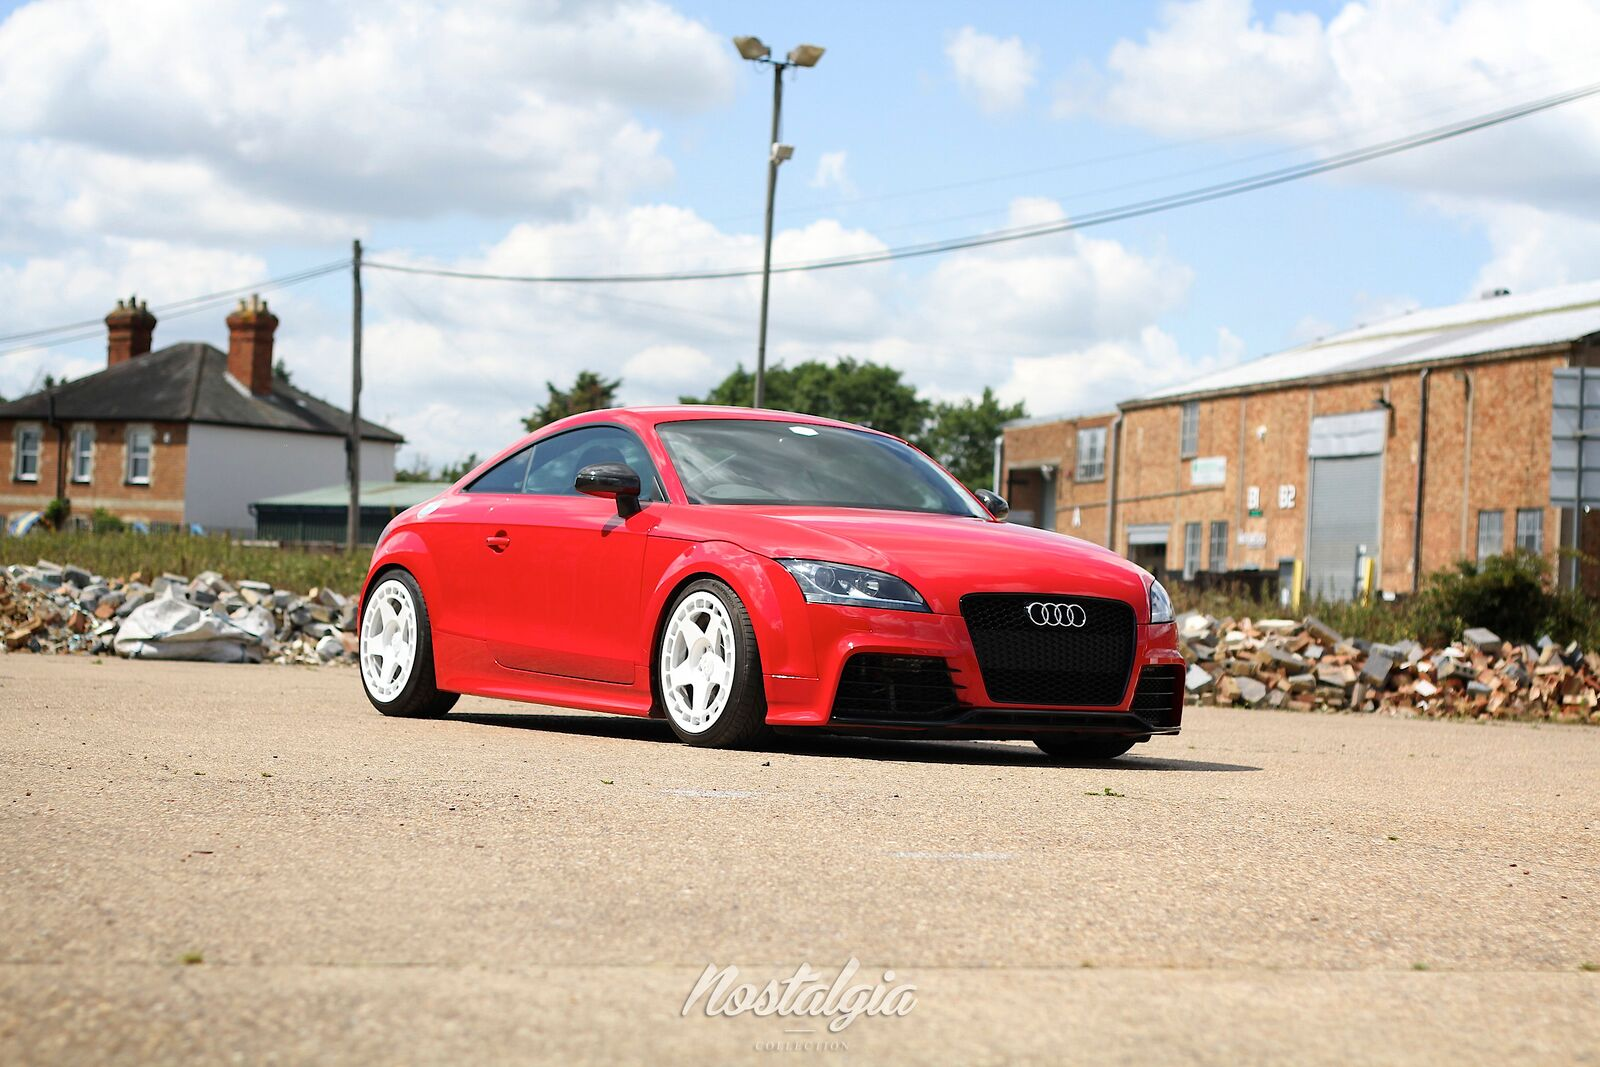 Seans' (@seansy) red Mk2 Audi TT on Rally White Turbomacs.